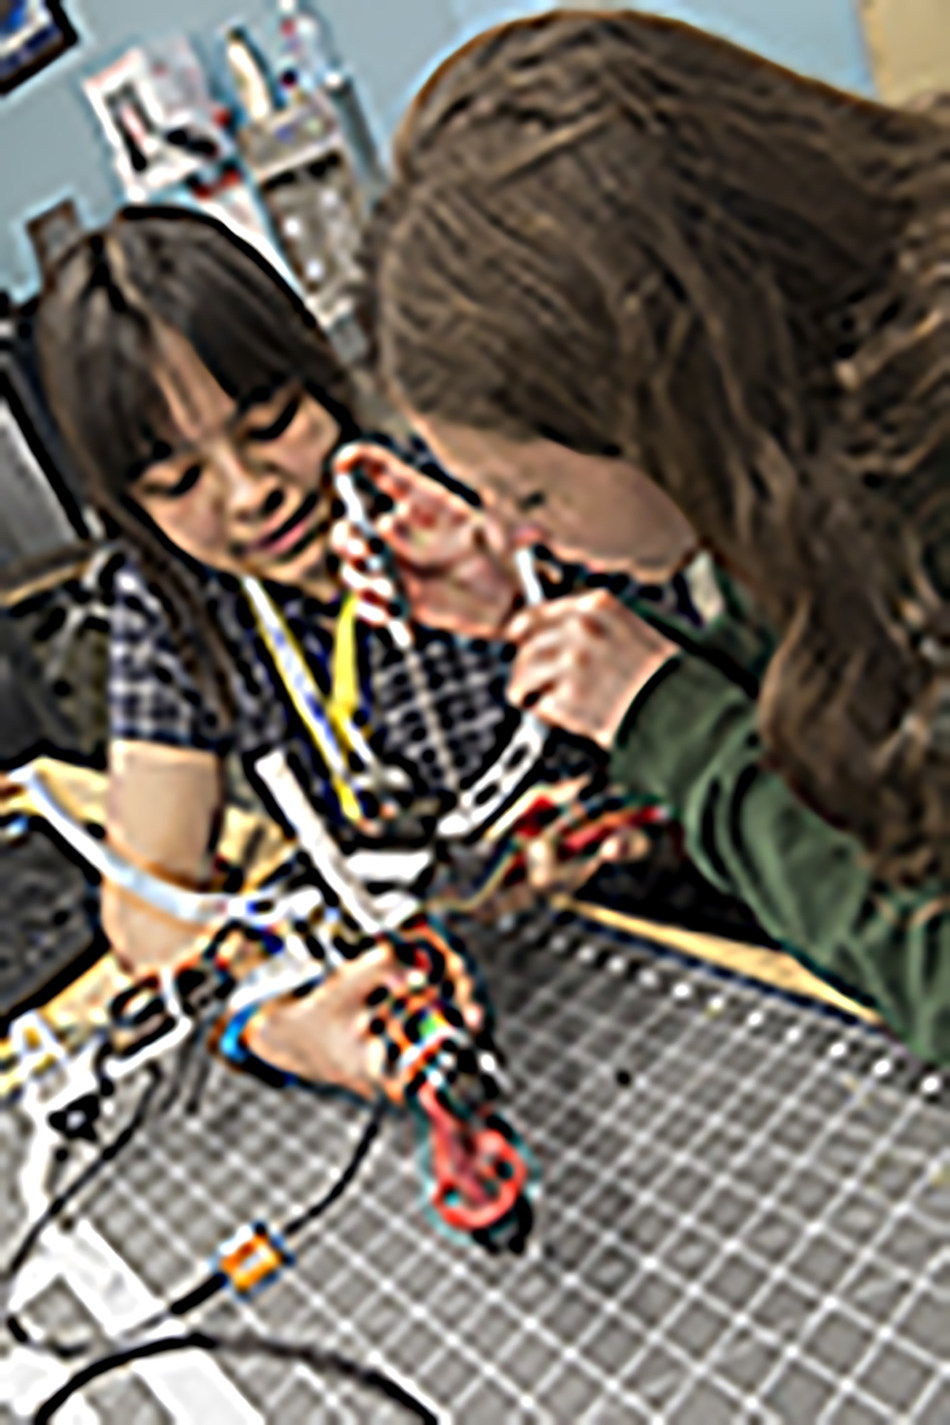 Alaska Airlines together with the Alaska Native Science and Engineering Program (ANSEP) partner to provide a brighter future for middle school students from rural communities across the state of Alaska.